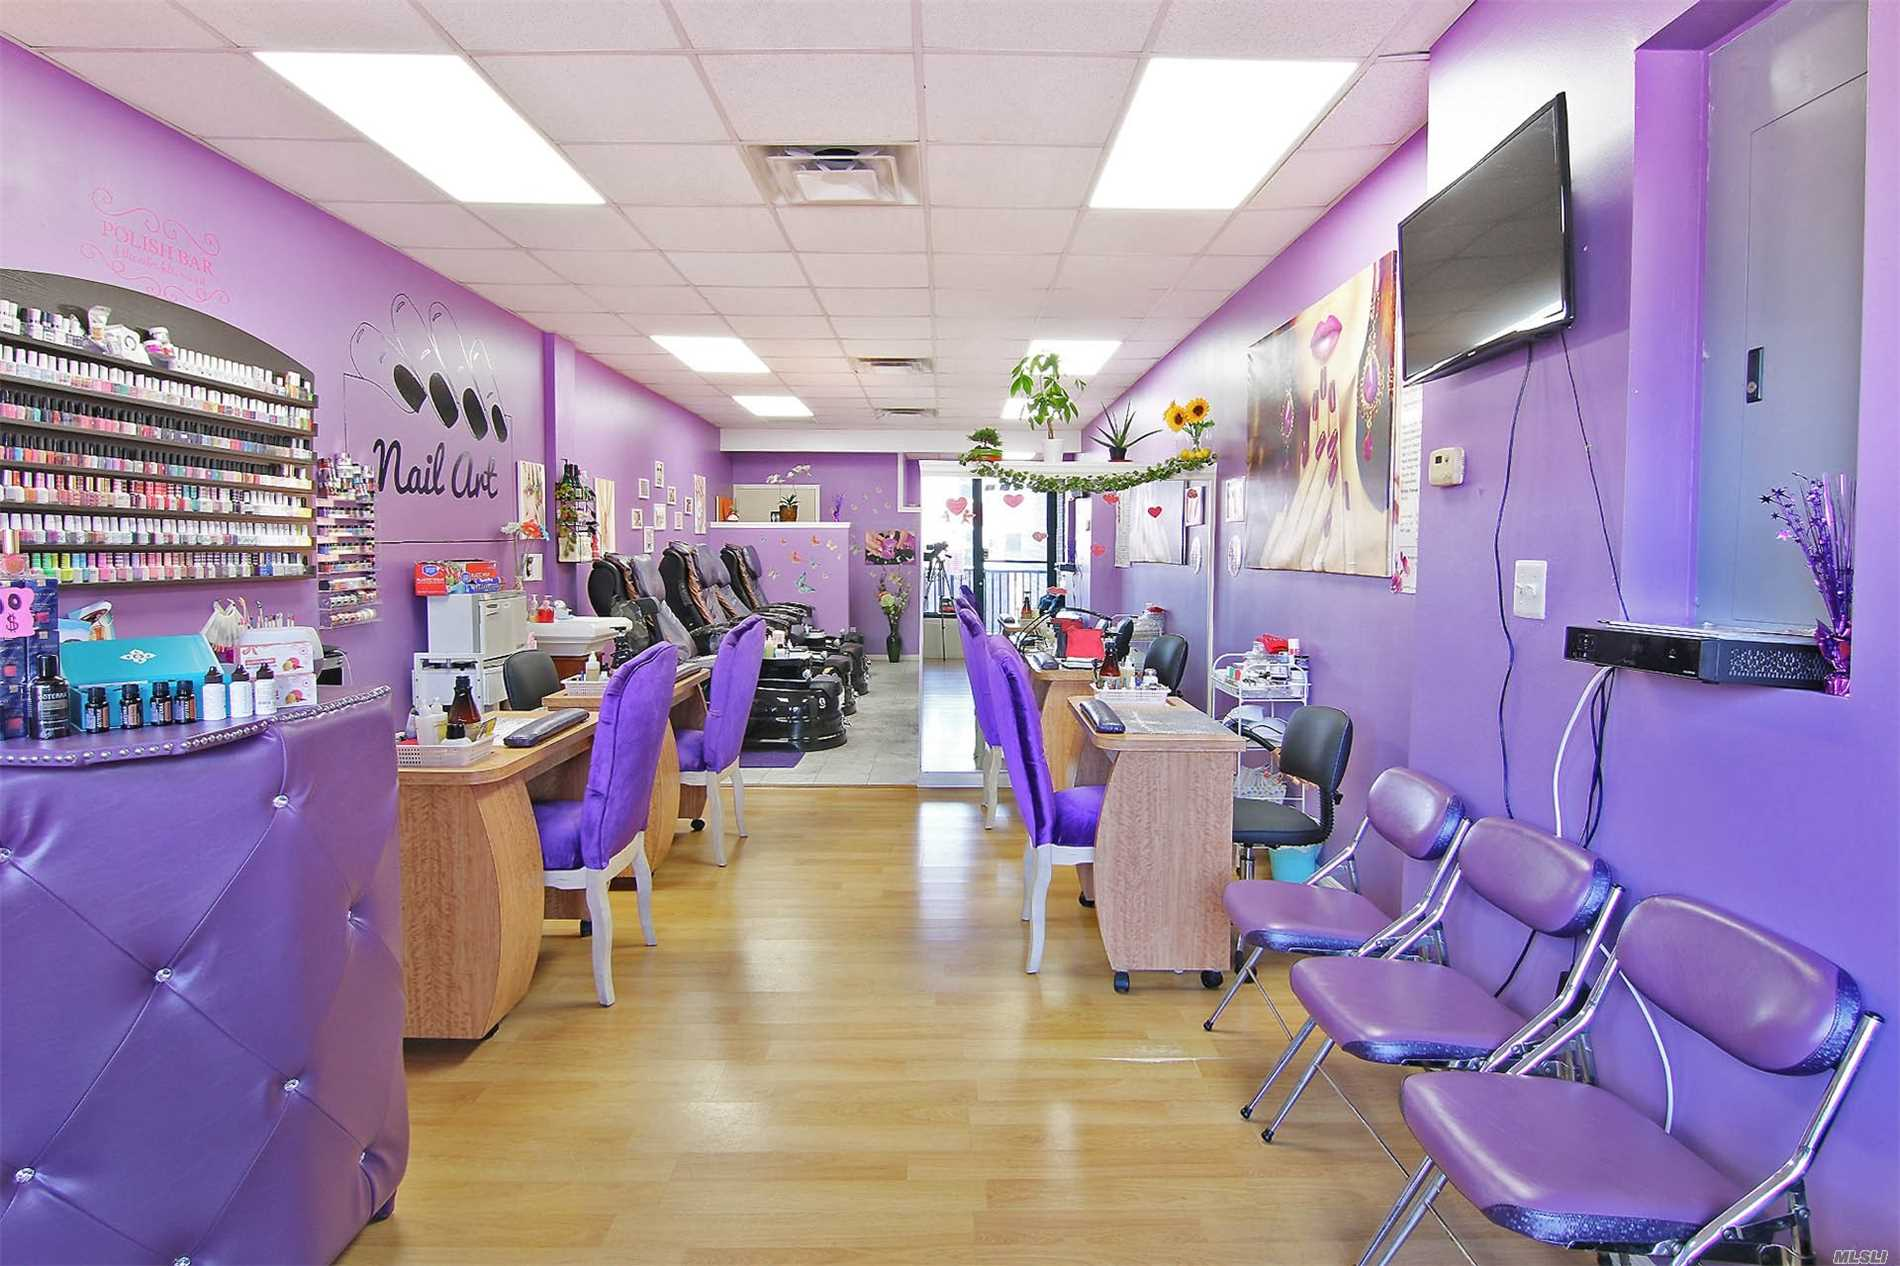 Beautiful Nail Salon In Whitestone. Prime Location! Conveniently Located In Clintonville Plaza, Surrounded By Multiple Businesses That Bring Lots Of Foot Traffic. A Young Business That Has Everything In Practically New Condition. 4 Pedicure Massage Chairs, 4 Manicure Tables, One Nail Drying Table, 1 Facial Room, A Massage Room, And An Extra Room. Low Rent Of $1800. 2 Years Left With The Option To Renew For Another 3 Years.